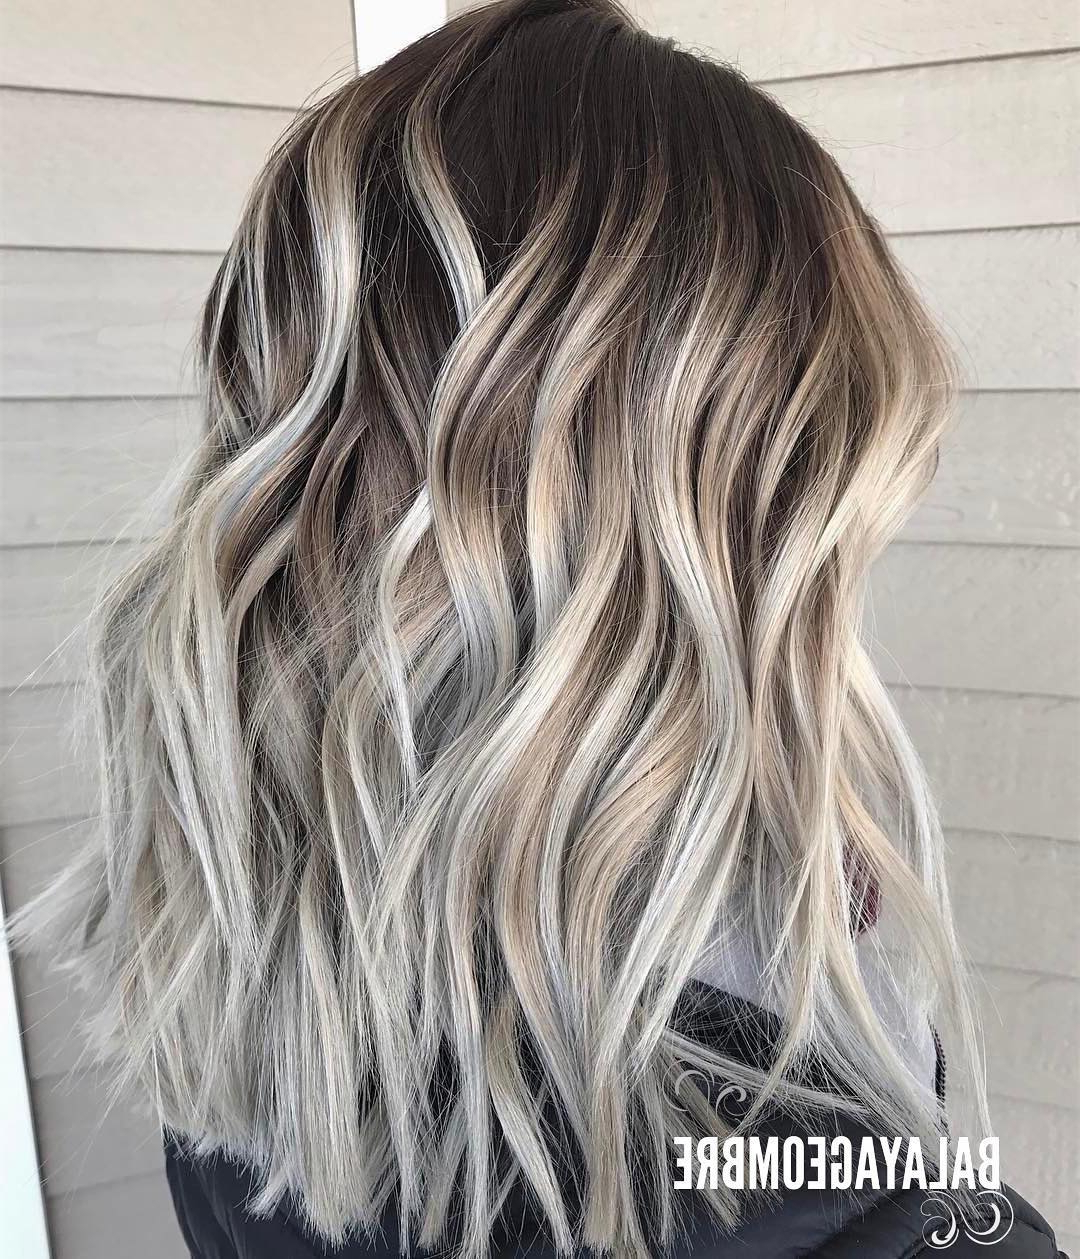 10 Best Medium Layered Hairstyles 2019 – Brown & Ash Blonde Fashion In 2018 Medium Haircuts For Women With Grey Hair (View 2 of 20)